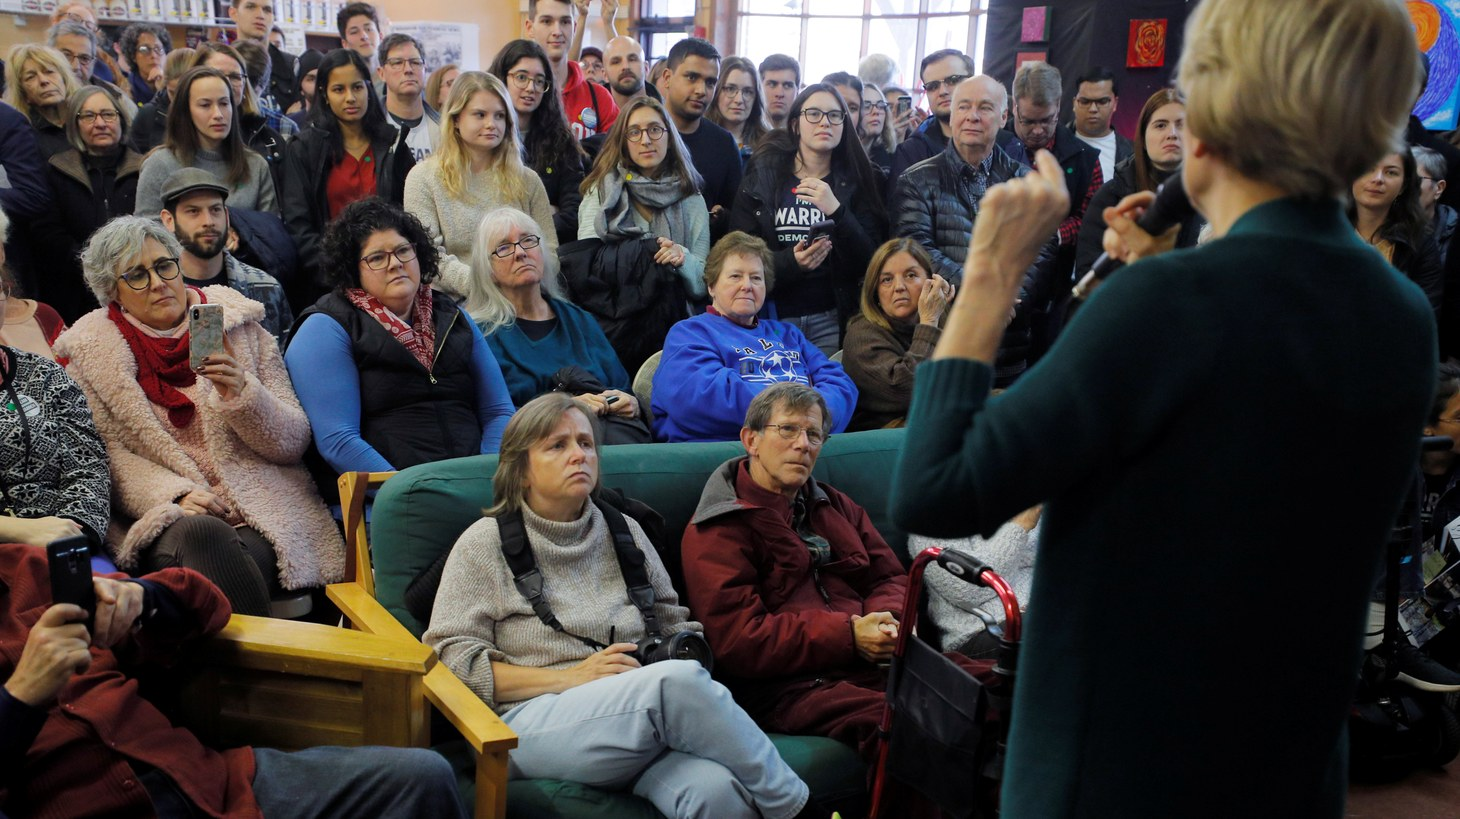 Democratic 2020 U.S. presidential candidate and U.S. Senator Elizabeth Warren (D-MA) speaks to supporters at a campaign canvass kick-off in Salem, New Hampshire, U.S., November 23, 2019.